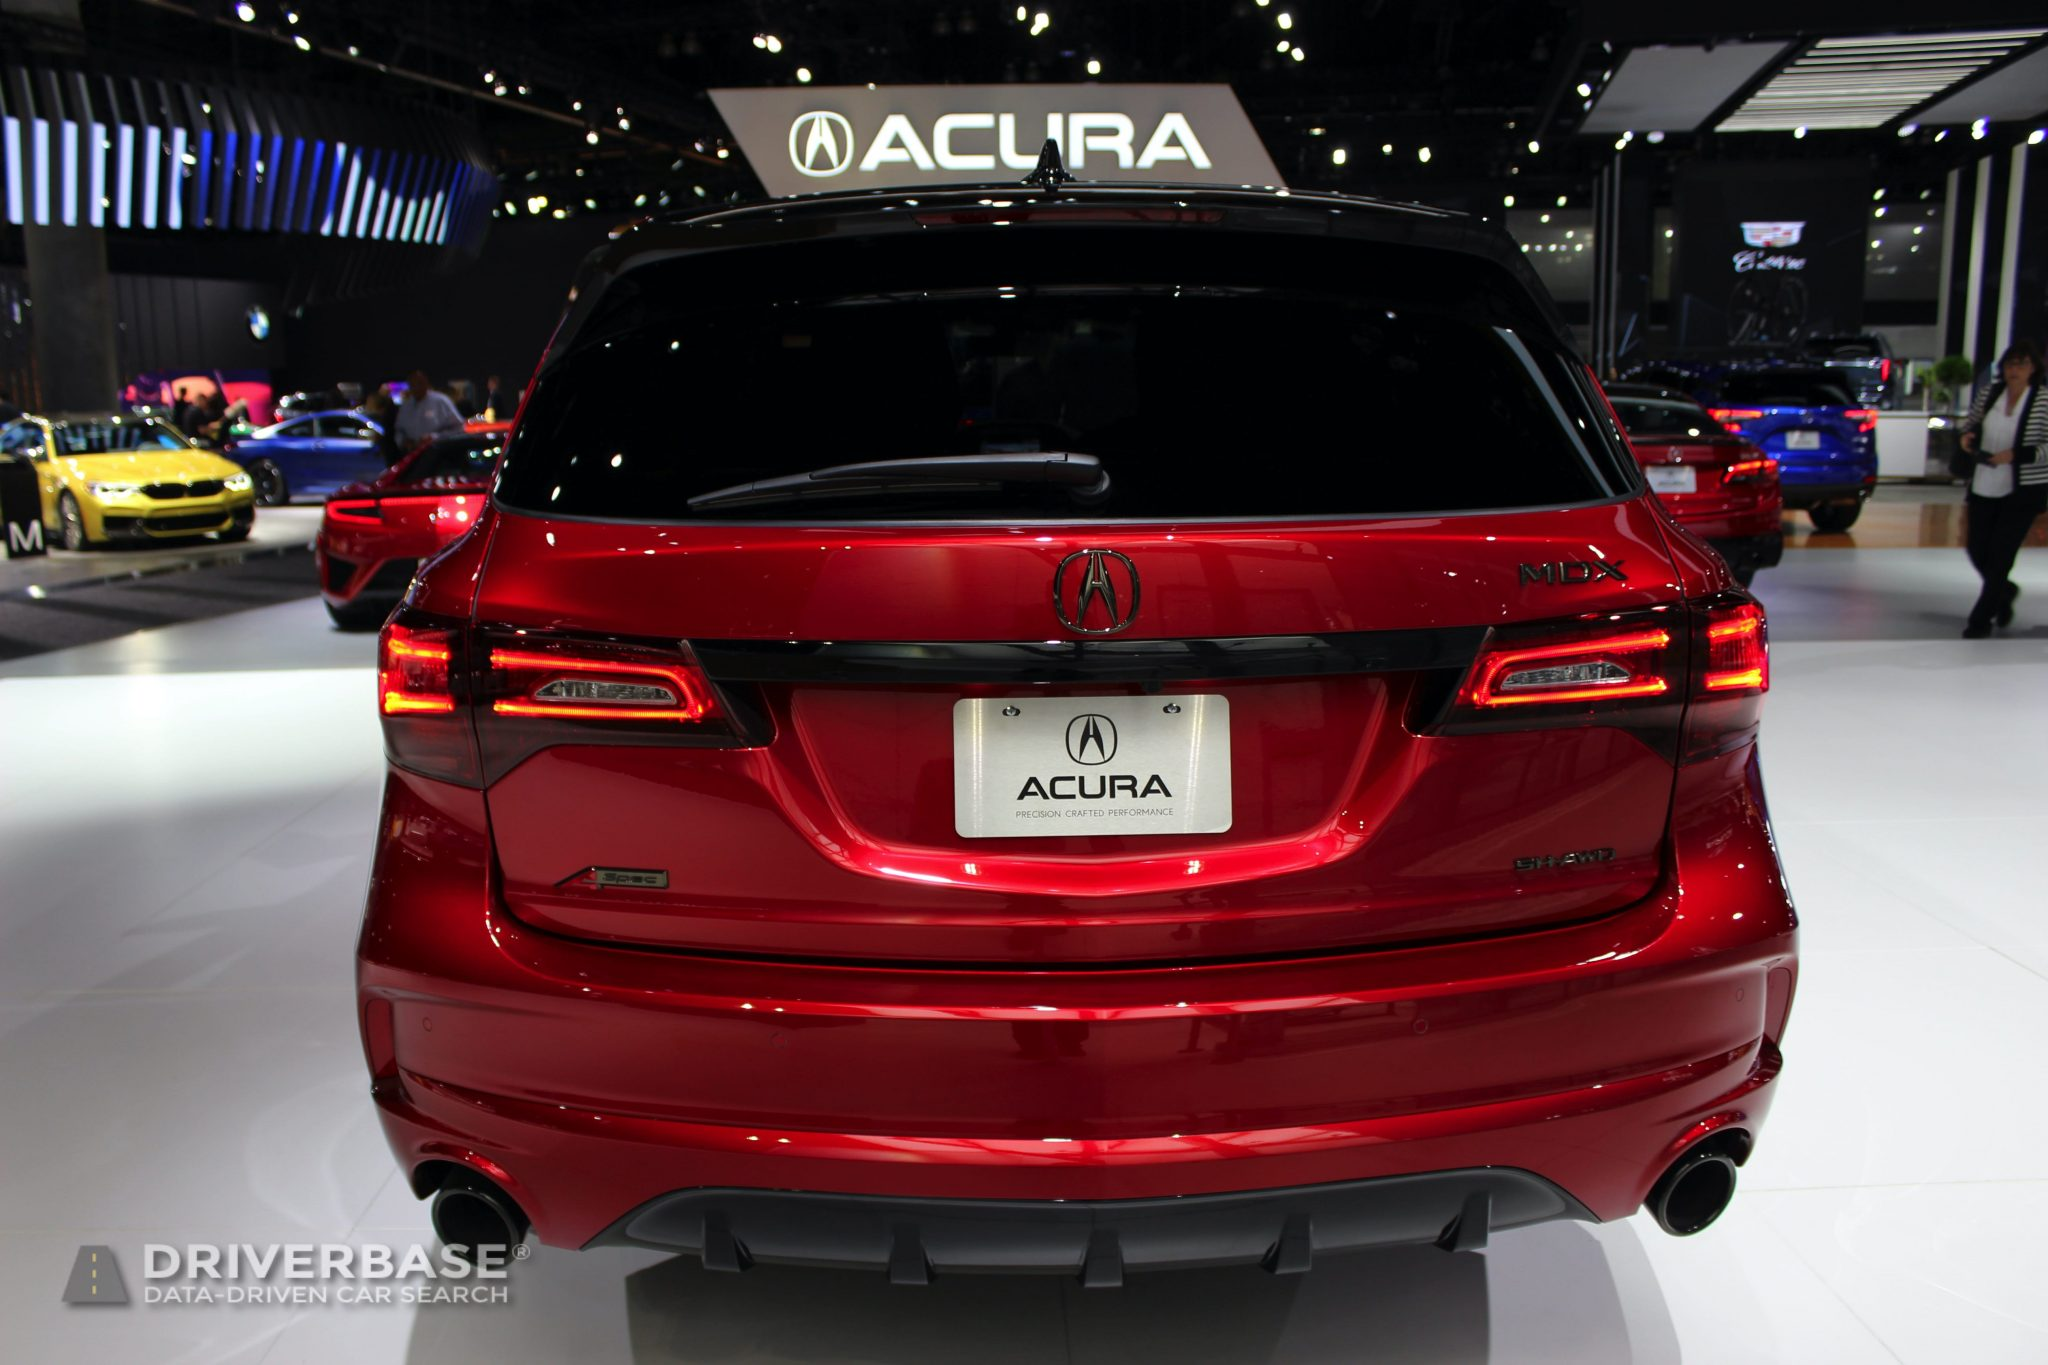 2020 Acura MDX at the 2019 Los Angeles Auto Show